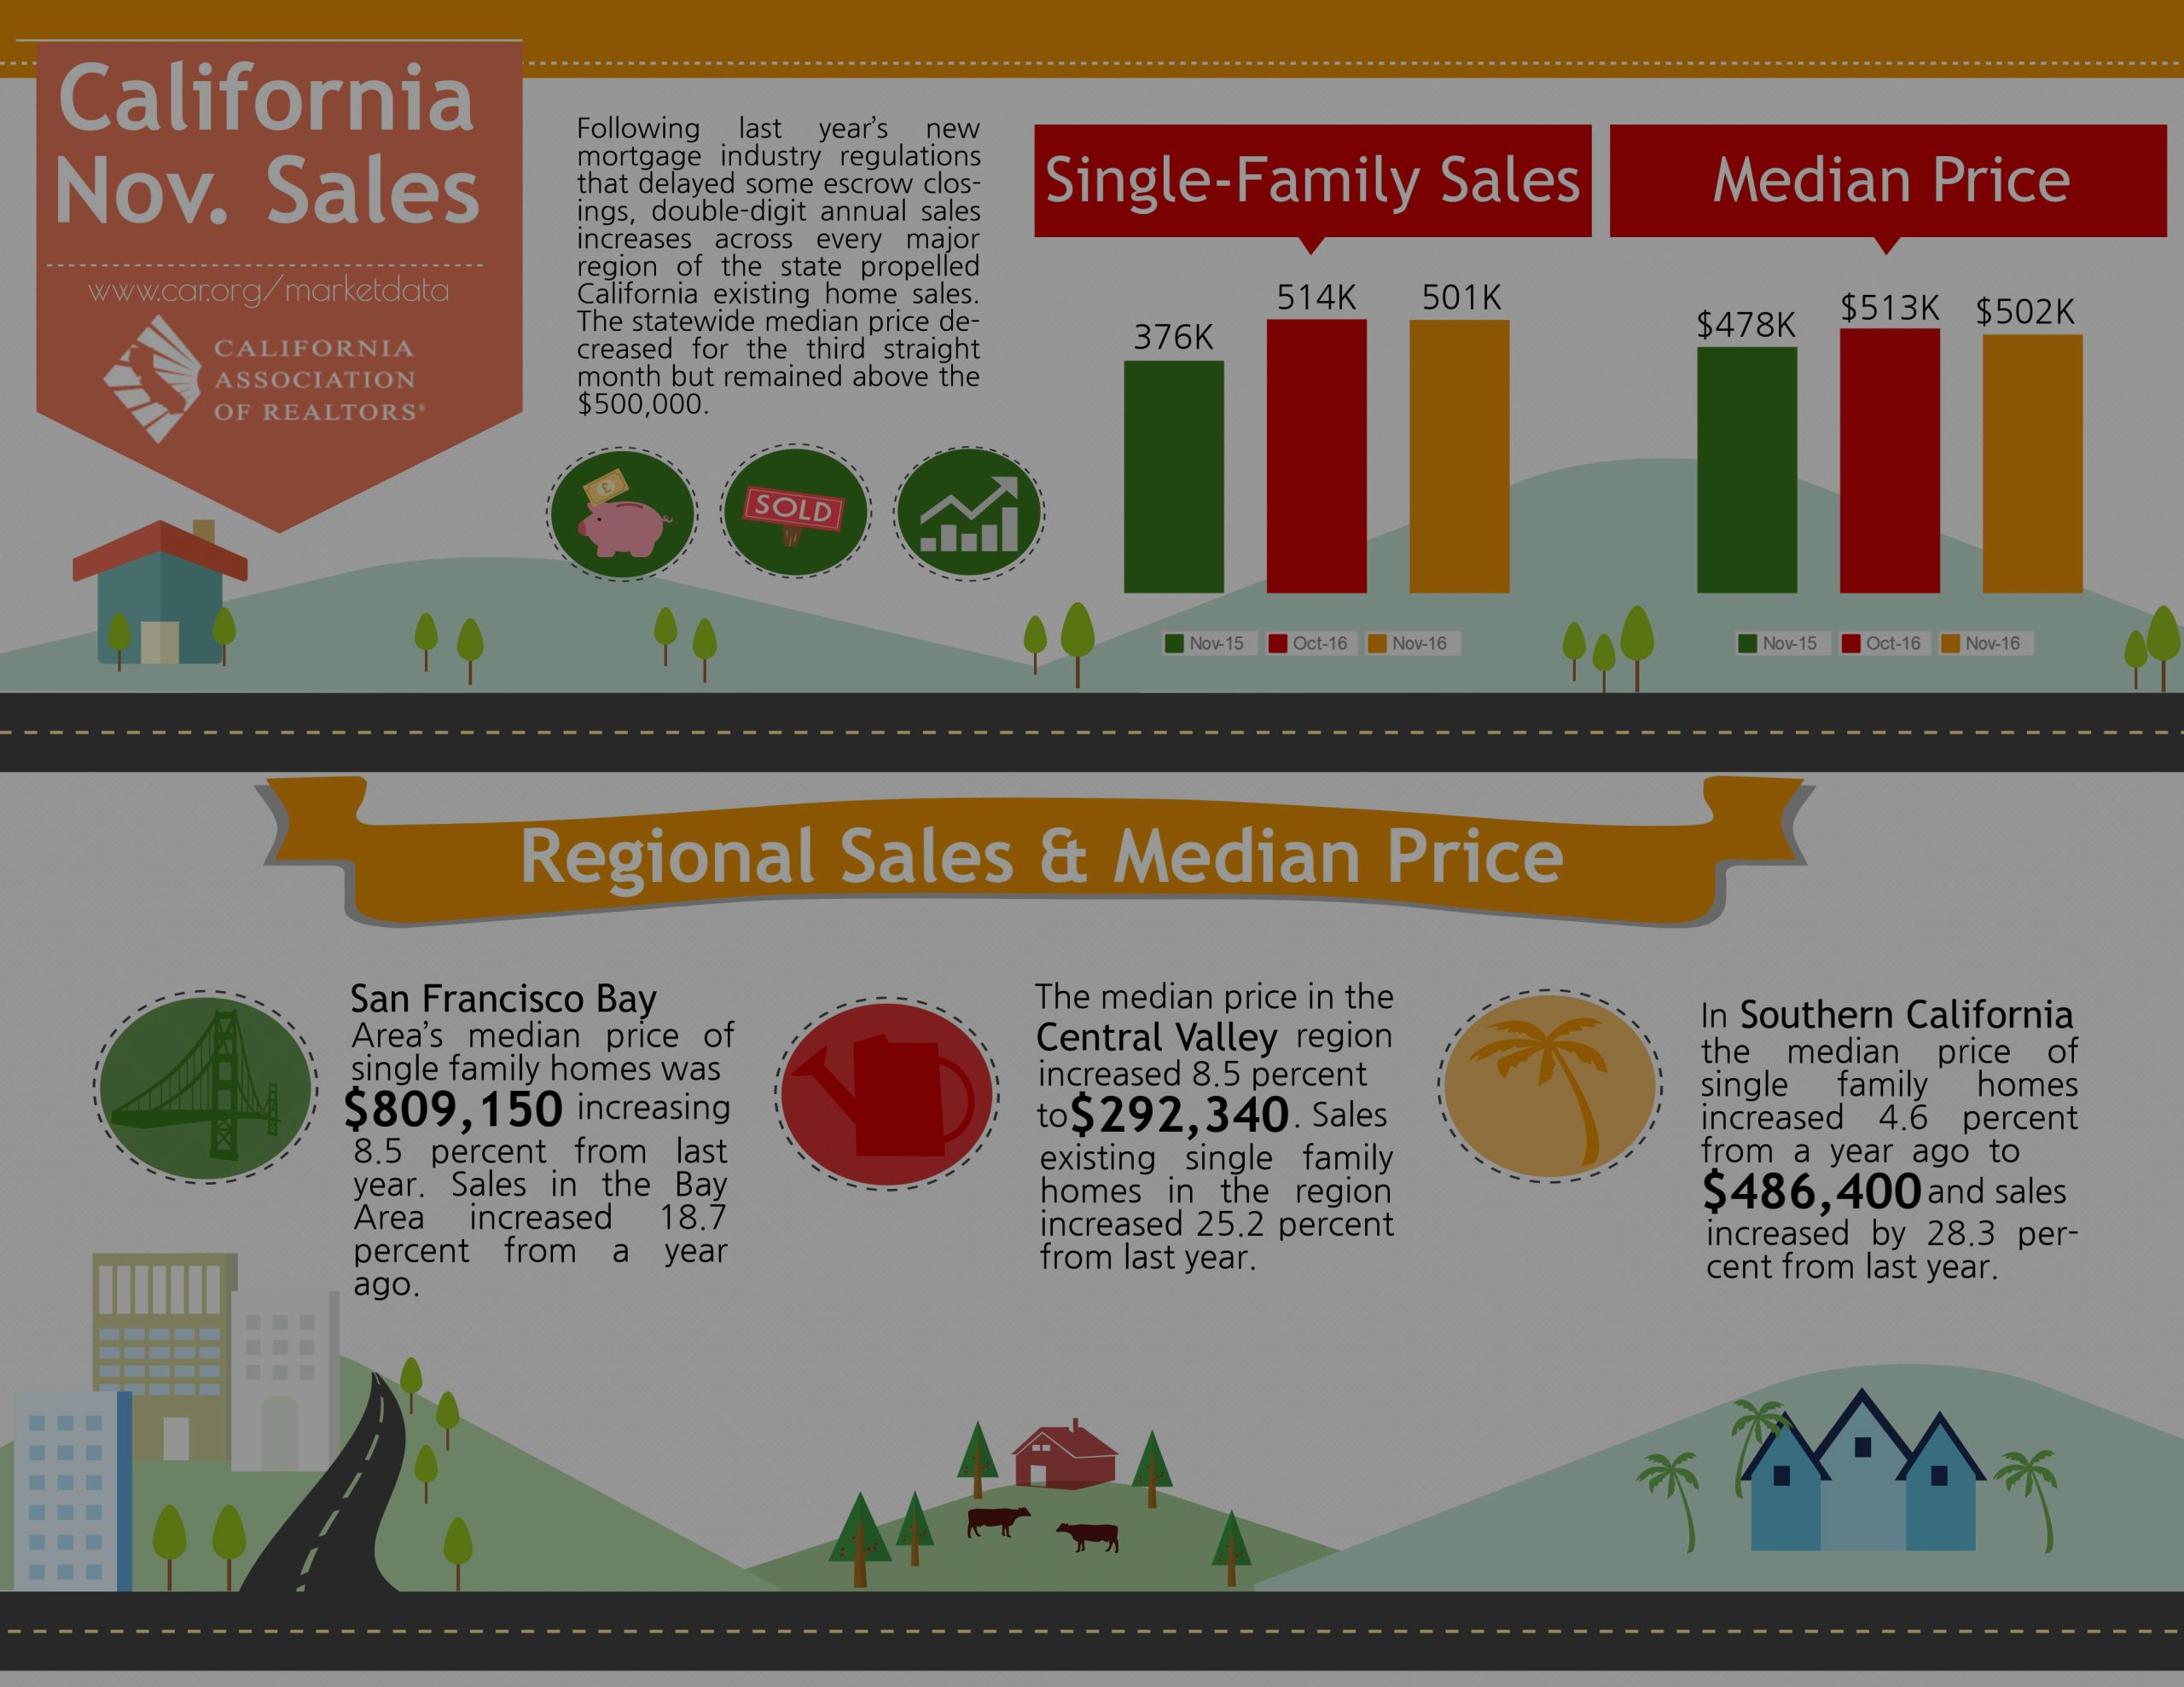 California Sales Report – November 2016